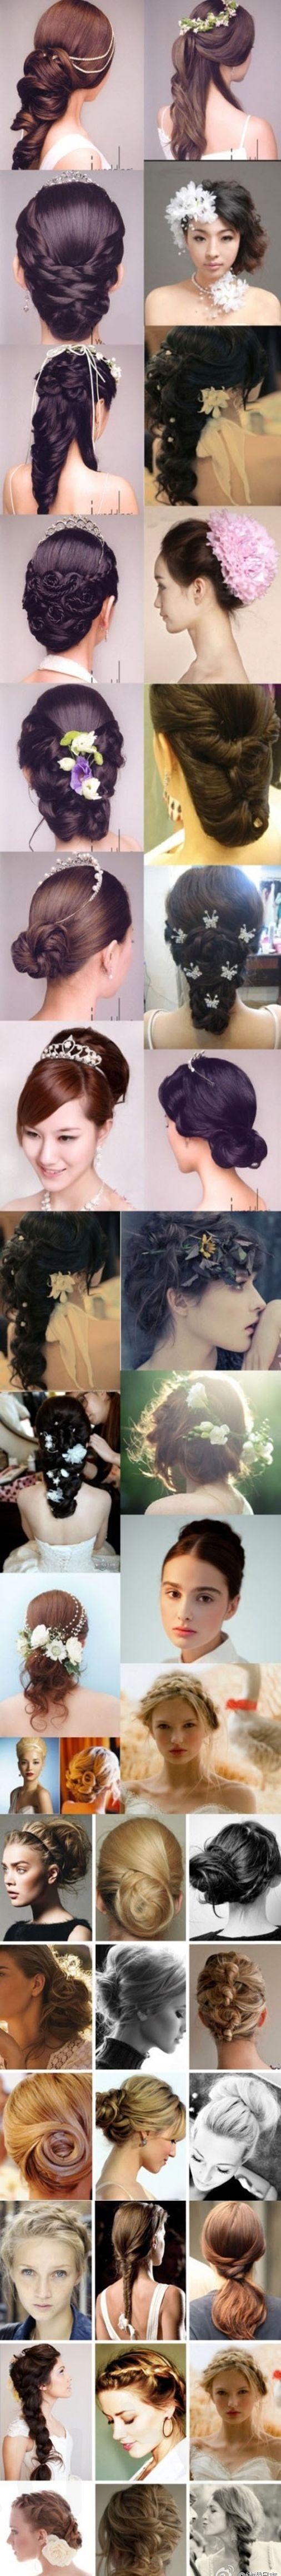 110 best wedding style images on Pinterest